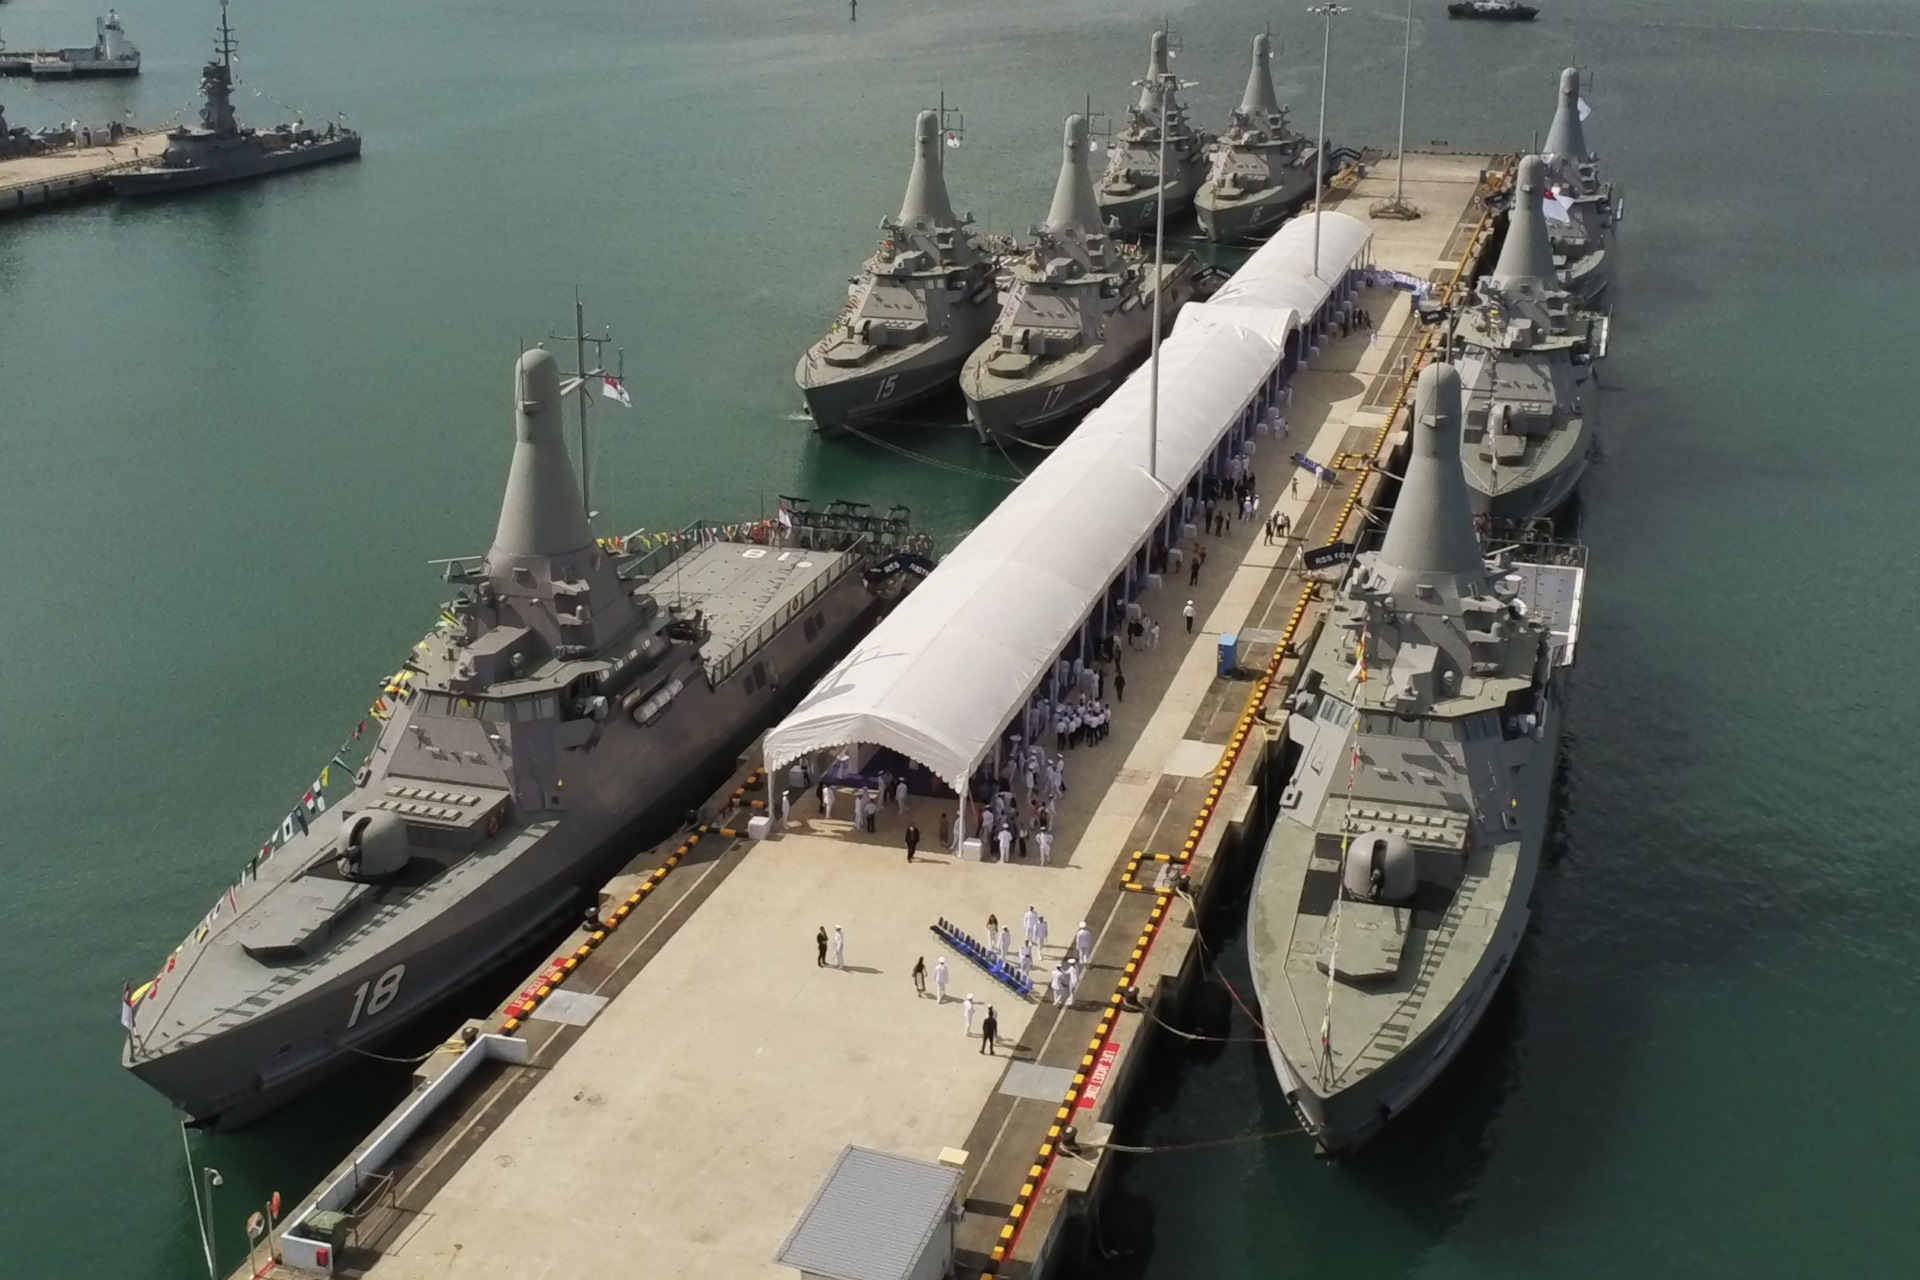 The Republic of Singapore Navy (RSN)'s fleet of Littoral Mission Vessels (LMVs) at Tuas Naval Base.